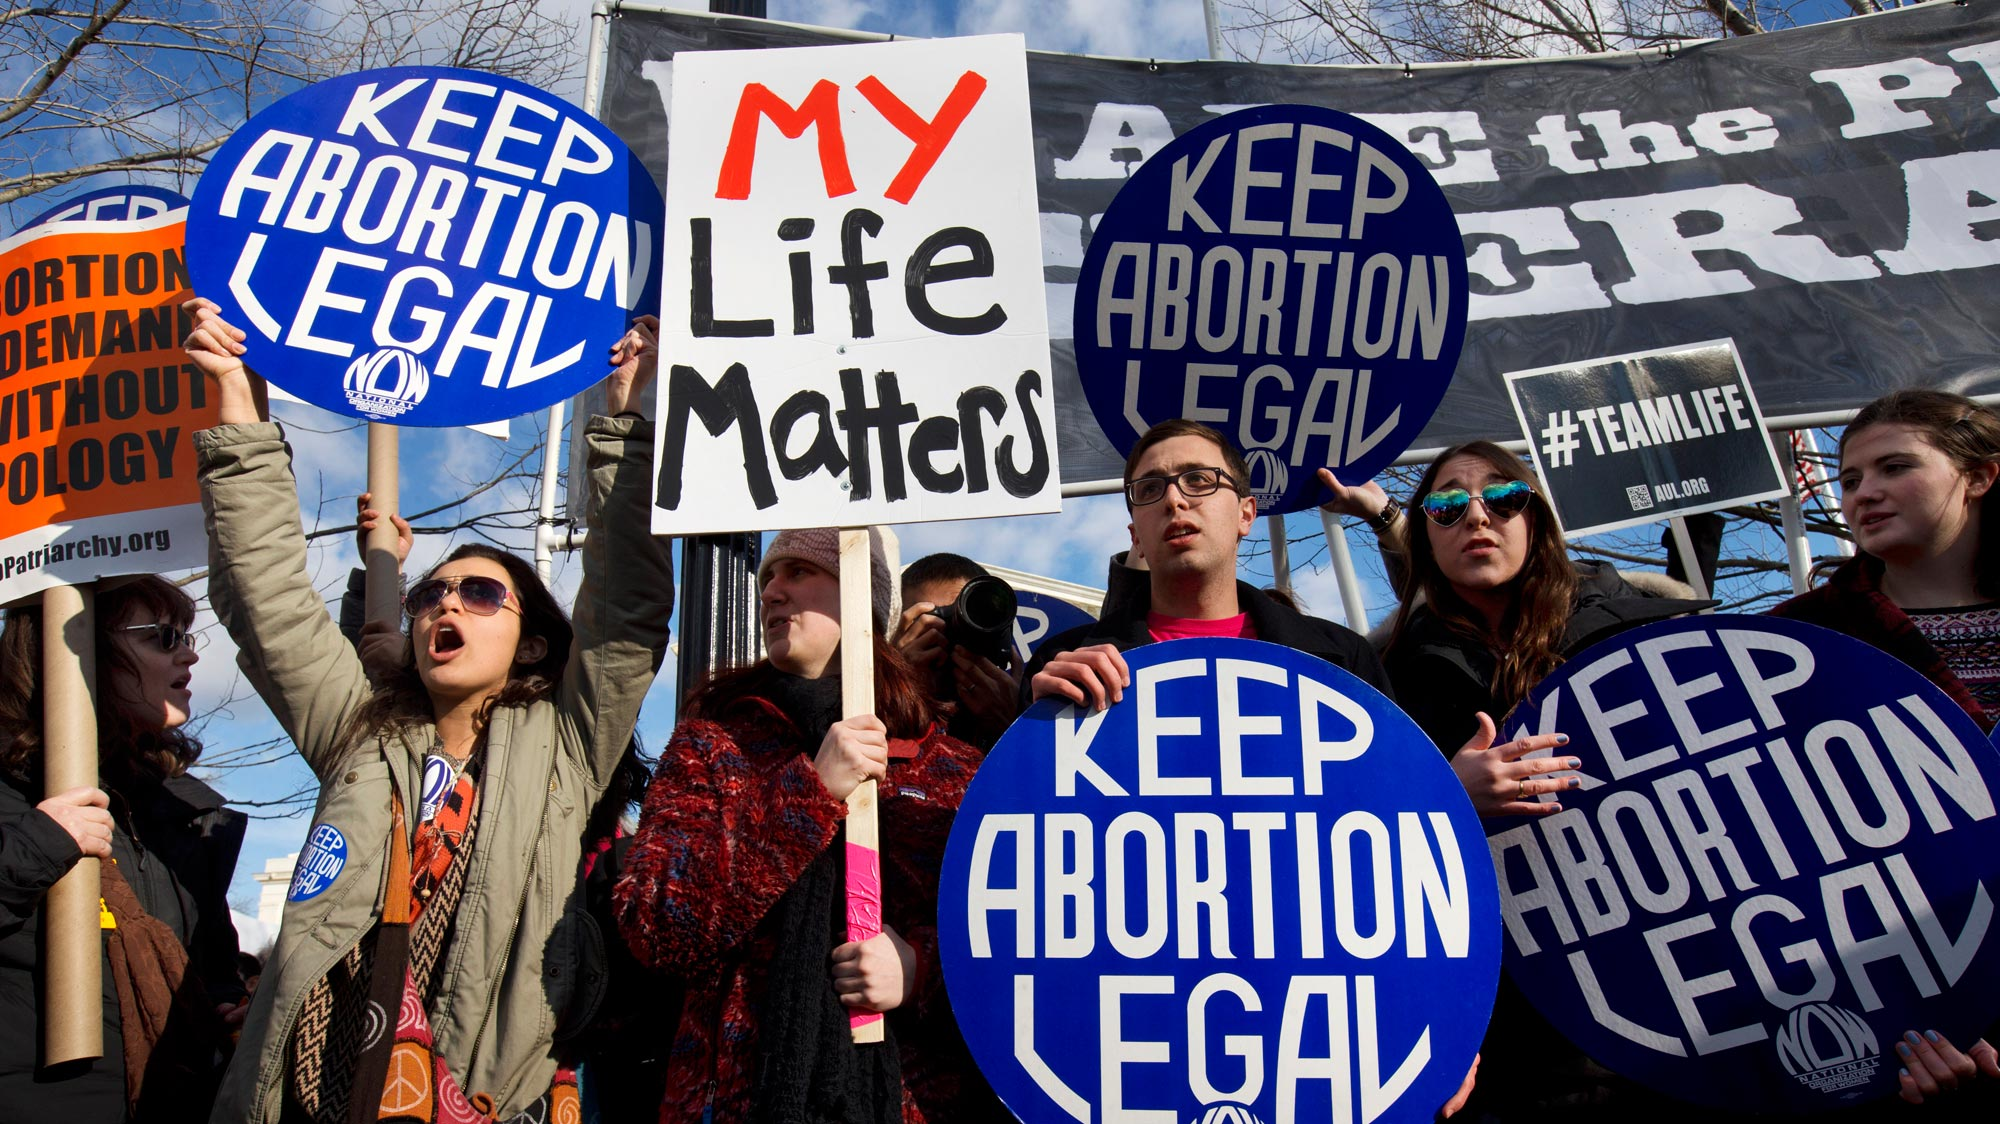 US Judge Orders Govt to Allow Undocumented Teen's Abortion